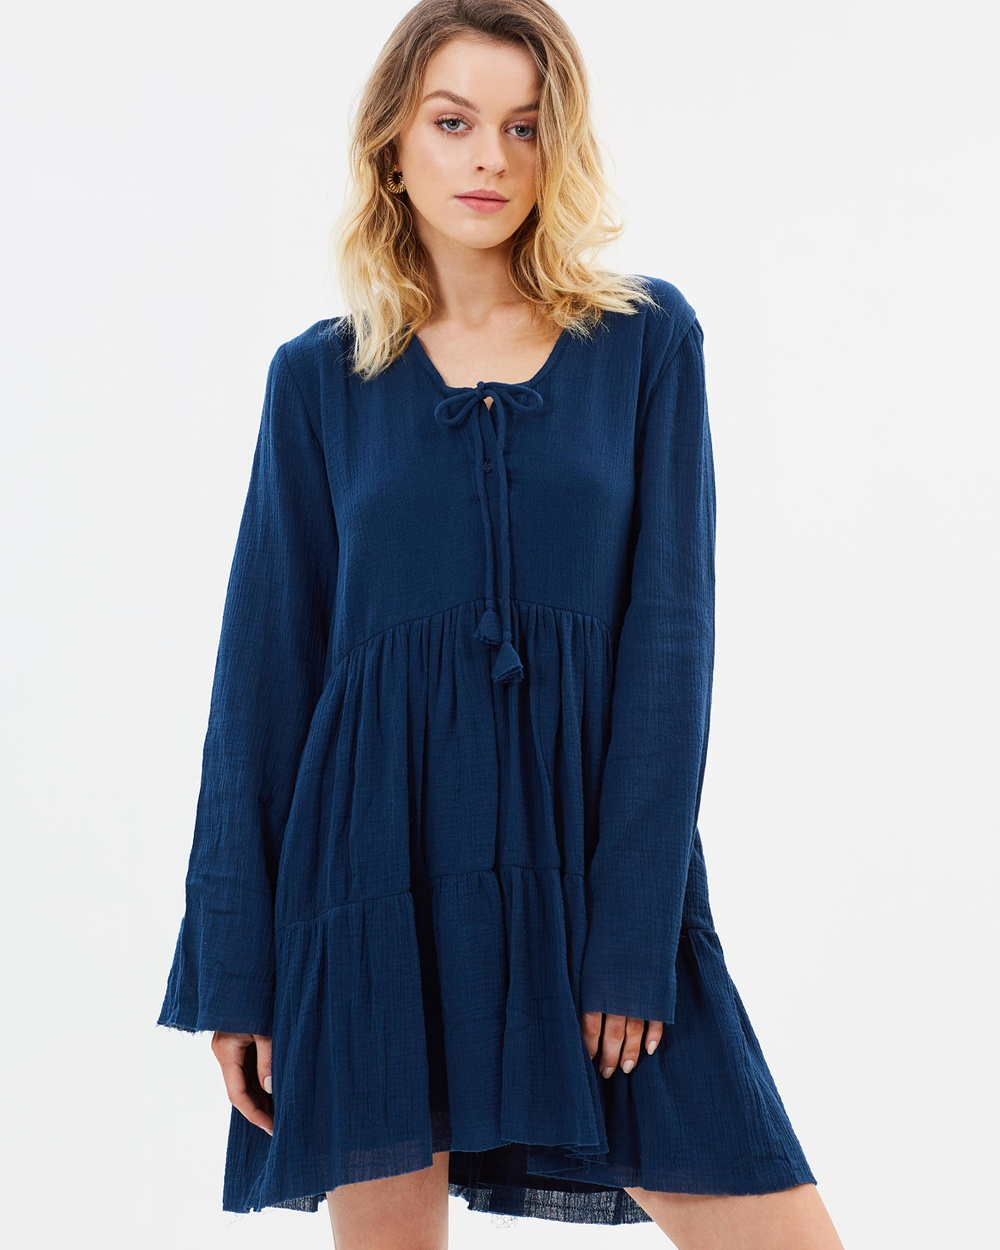 Rue Stiic Tucson Dress Dresses Navy Tucson Dress